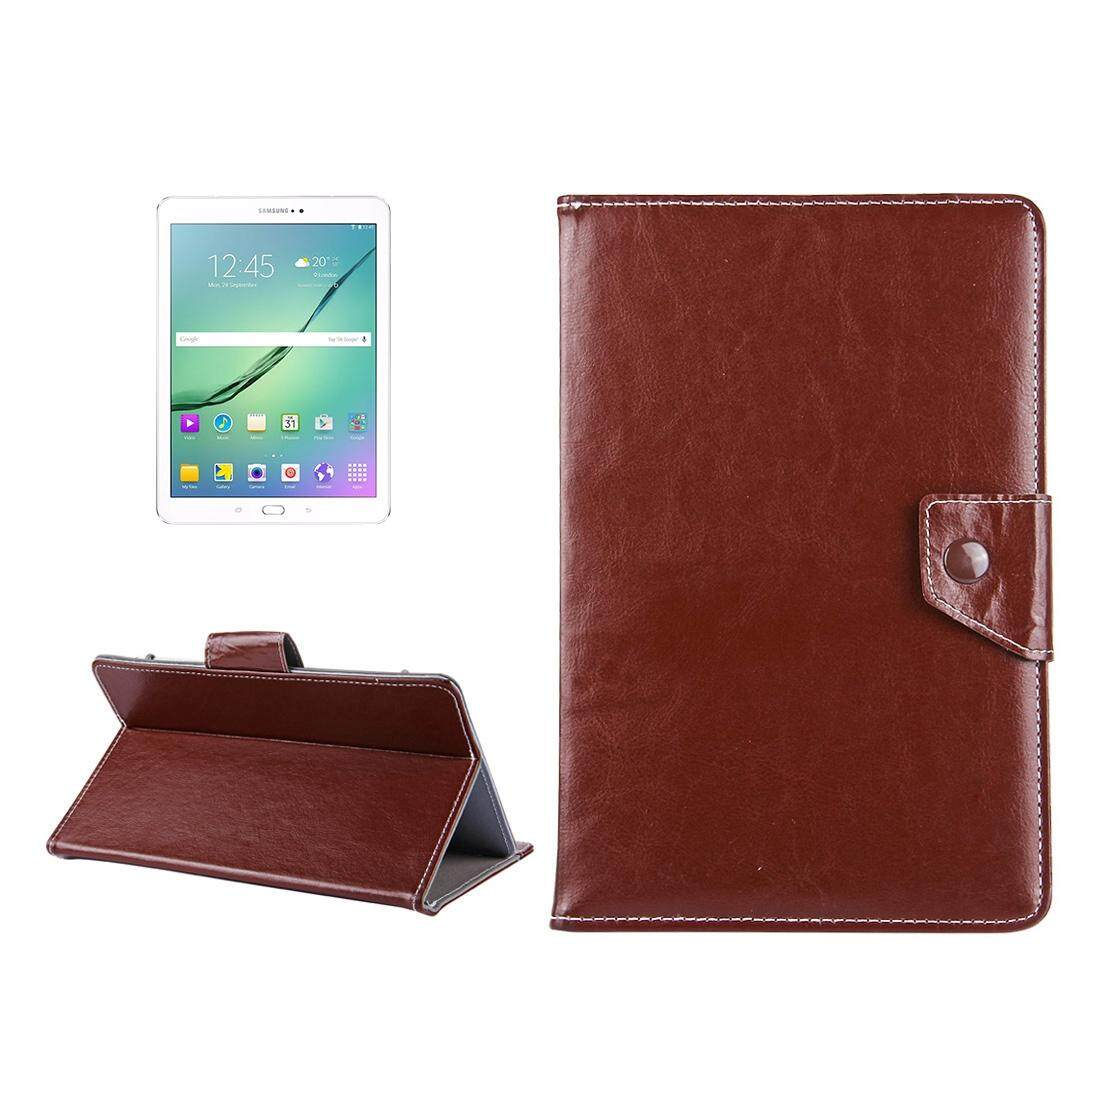 10 inch Tablets Leather Case Crazy Horse Texture Protective Case Shell with Holder for Asus ZenPad 10 Z300C, Huawei MediaPad M2 10.0-A01W, Cube IWORK10(Brown) - intl